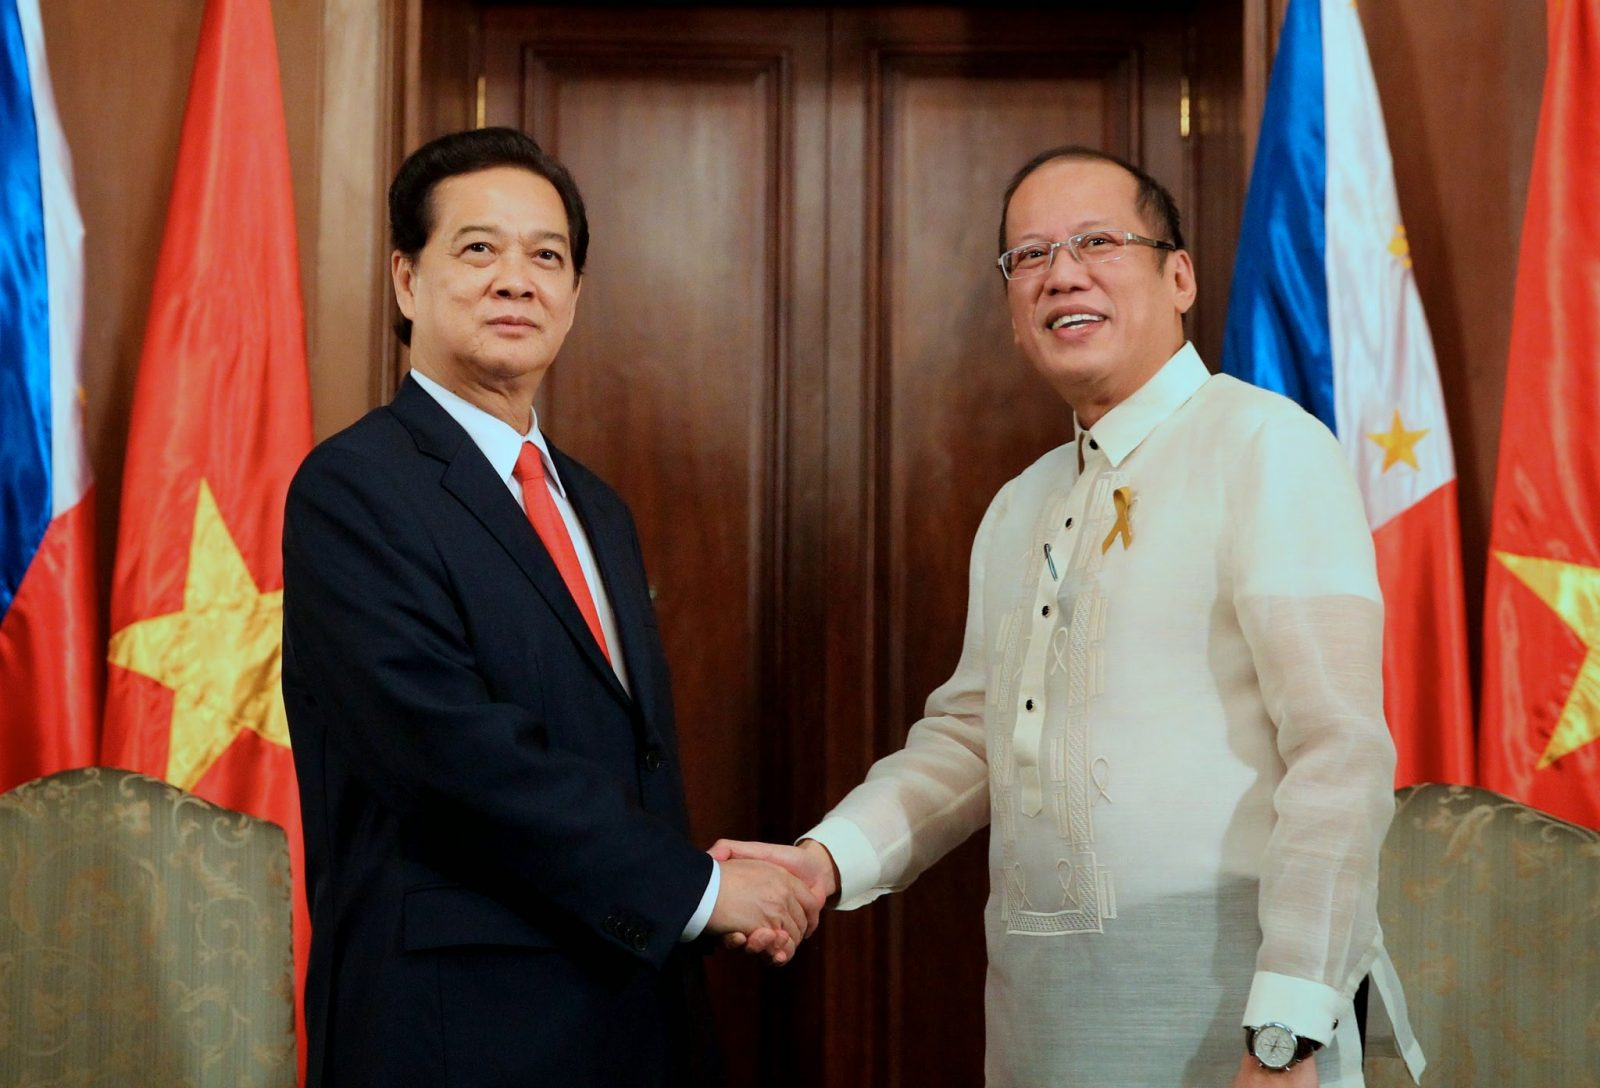 President Benigno S. Aquino III shakes hands with Prime Minister Nguyen Tan Dung of the Socialist Republic of Viet Nam during the courtesy call at the Music Room of the Malacañan Palace Wednesday (May 21) for a 2 -day working visit to the Philippines. Viet Nam was the country's 18th trading partner in 2013, with the total trade amounting to US$ 1.33 billion. This is the Prime Minister's second visit to the Philippines since August 2007. (Photo by Ryan Lim / Malacañang Photo Bureau)